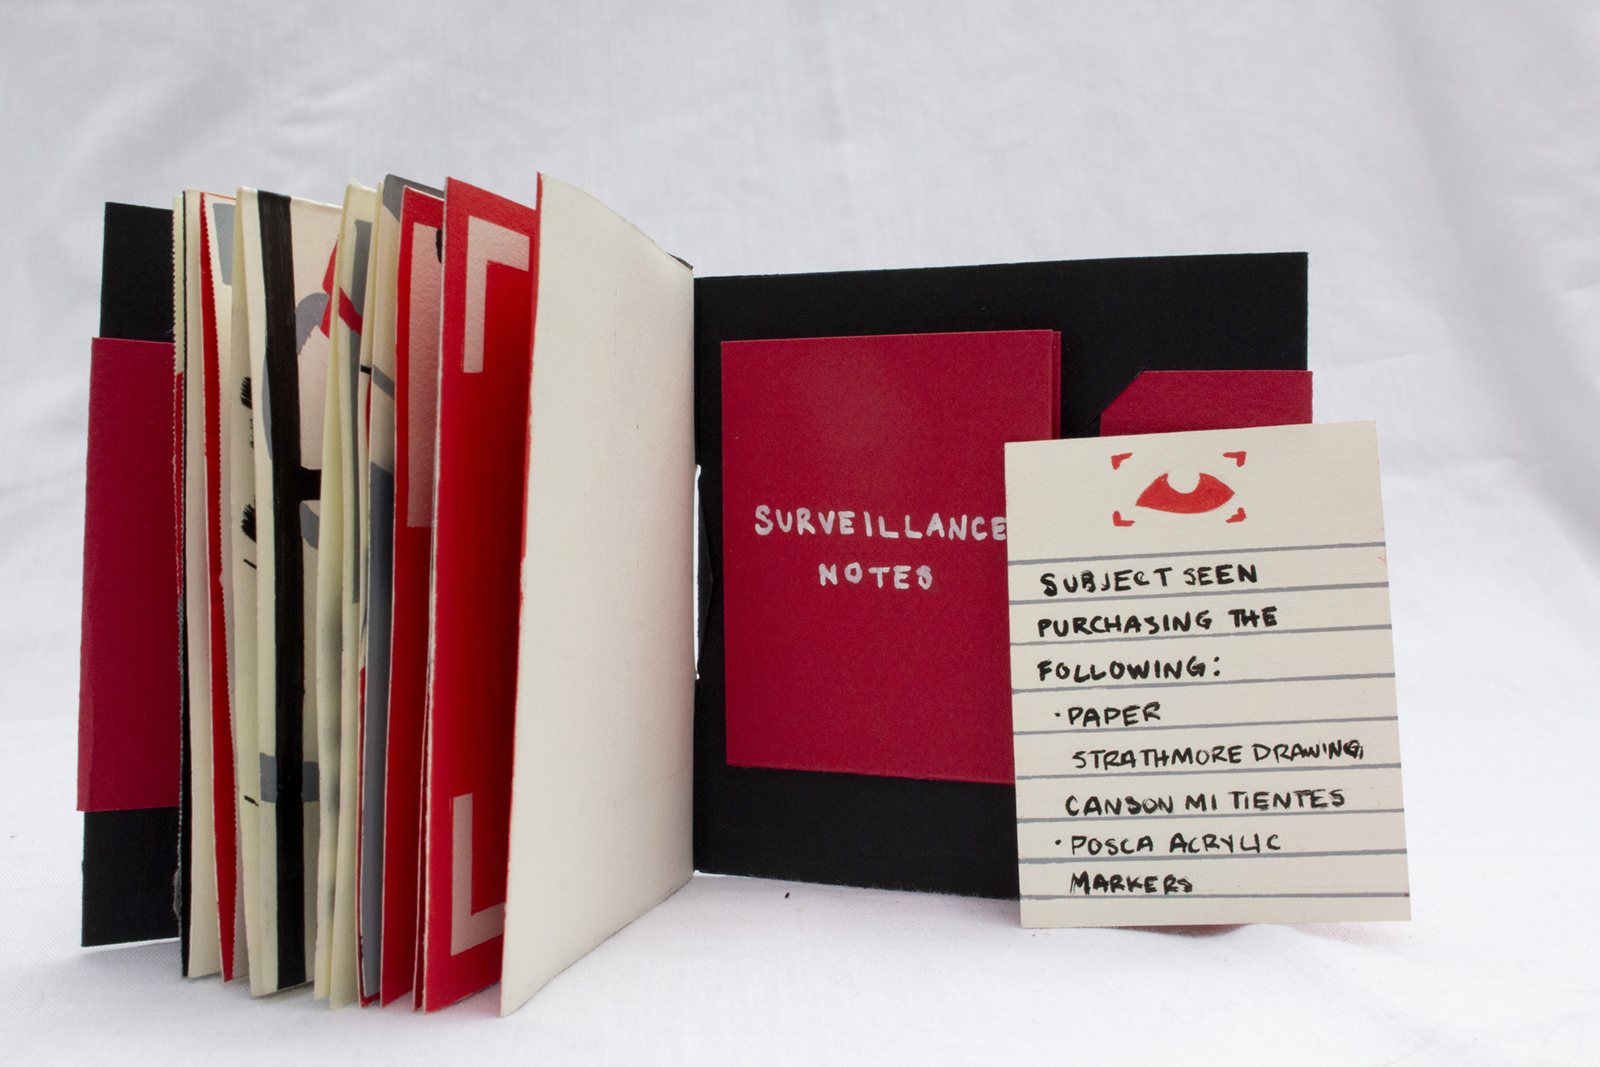 Back cover sleeve. The paper from the pocket is a colophon listing supplies in the format of surveillance notes.